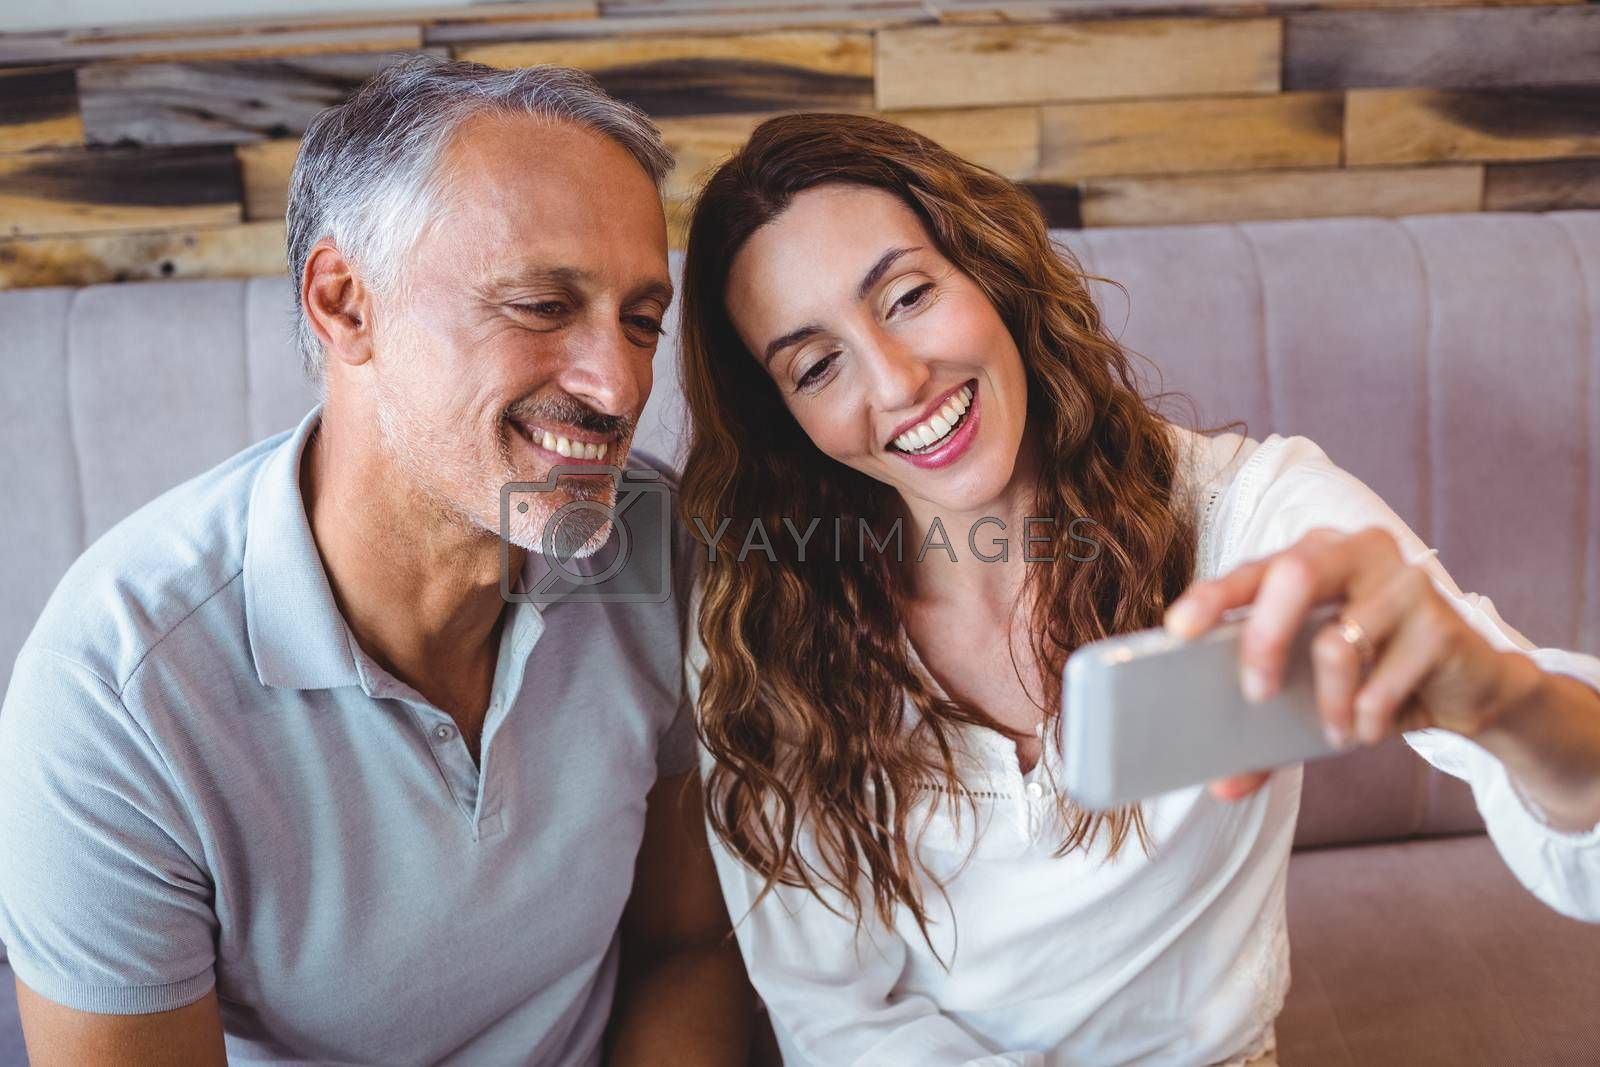 Royalty free image of Couple taking a selfie by Wavebreakmedia